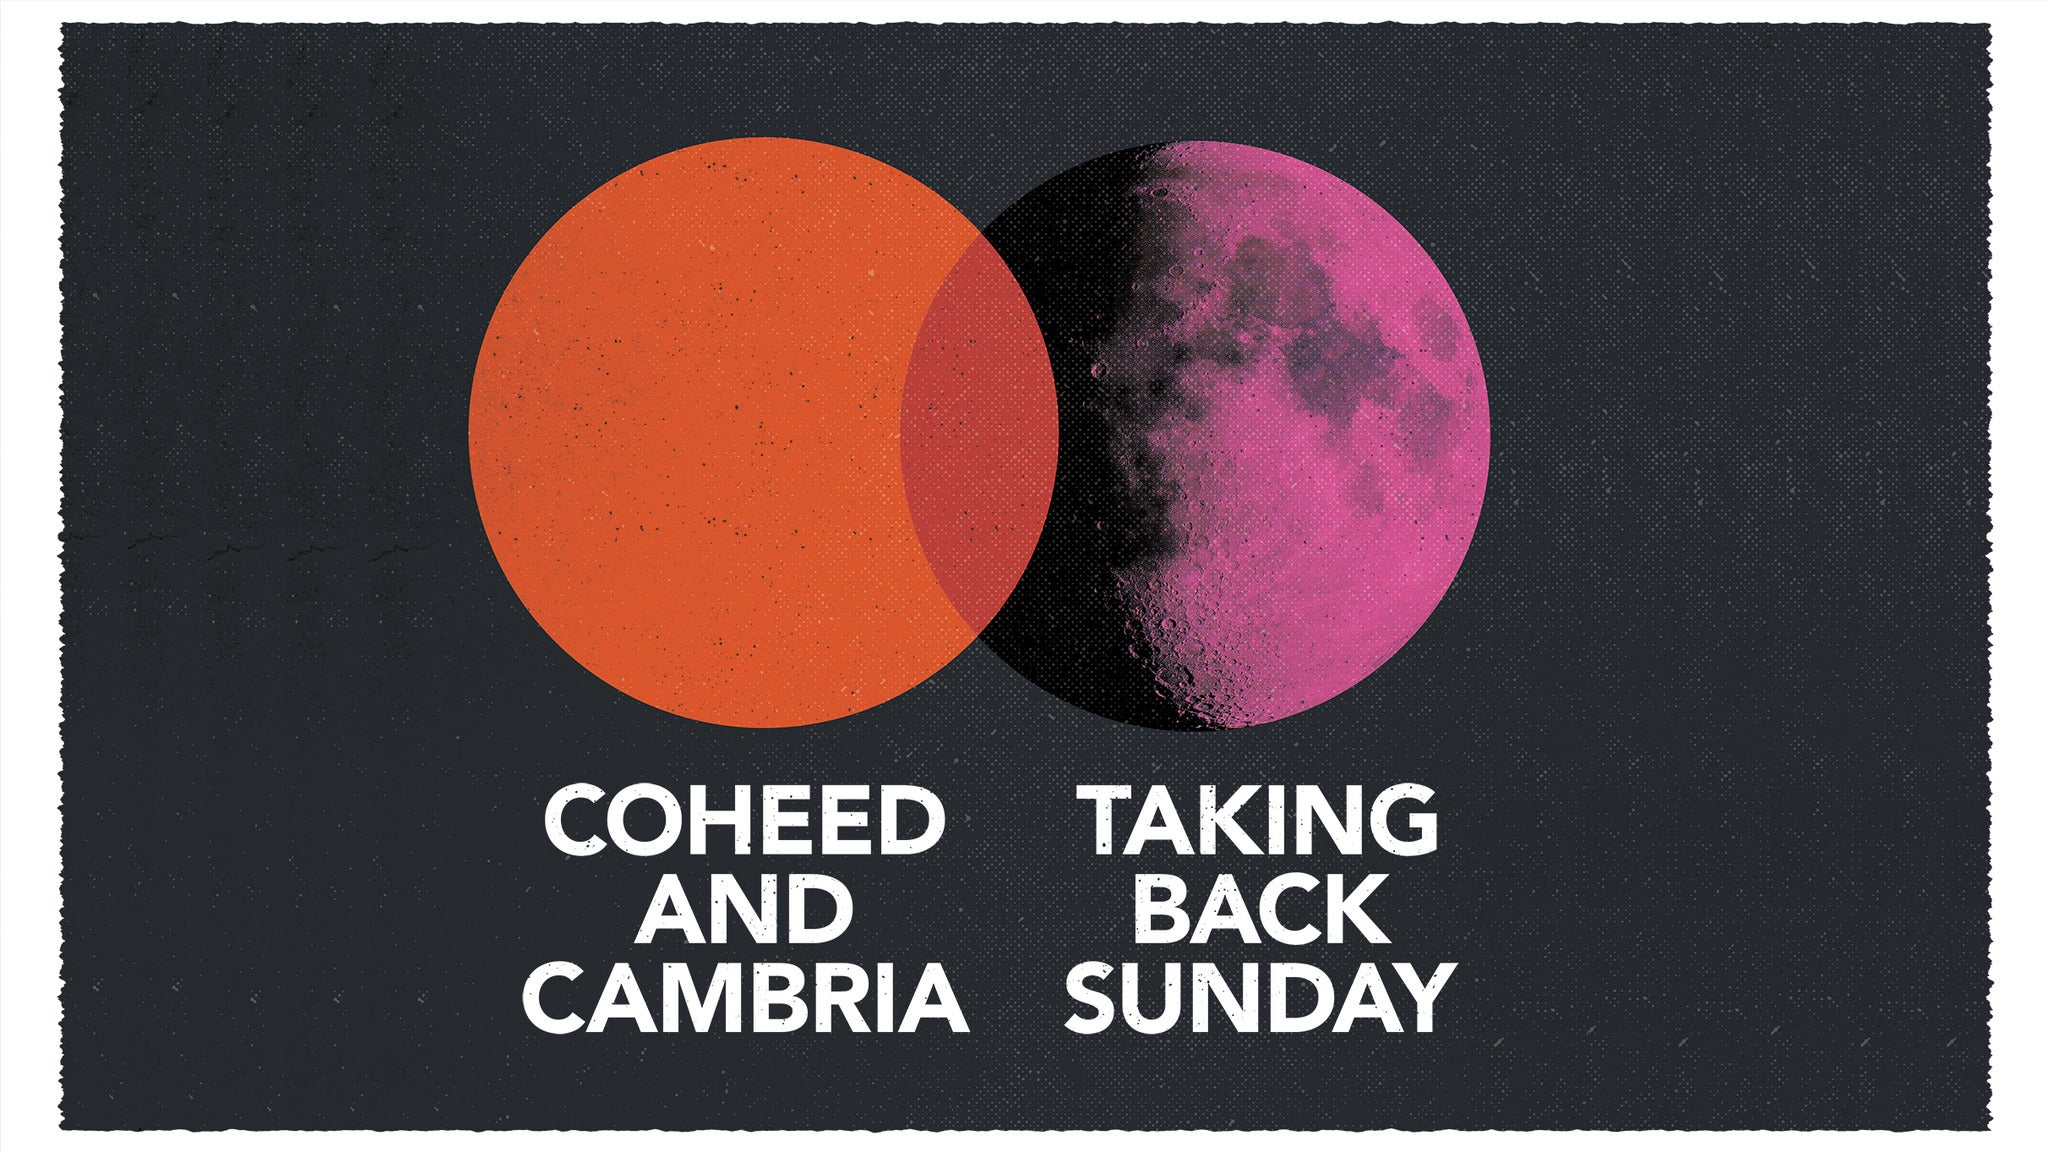 Coheed and Cambria & Taking Back Sunday at Comerica Theatre